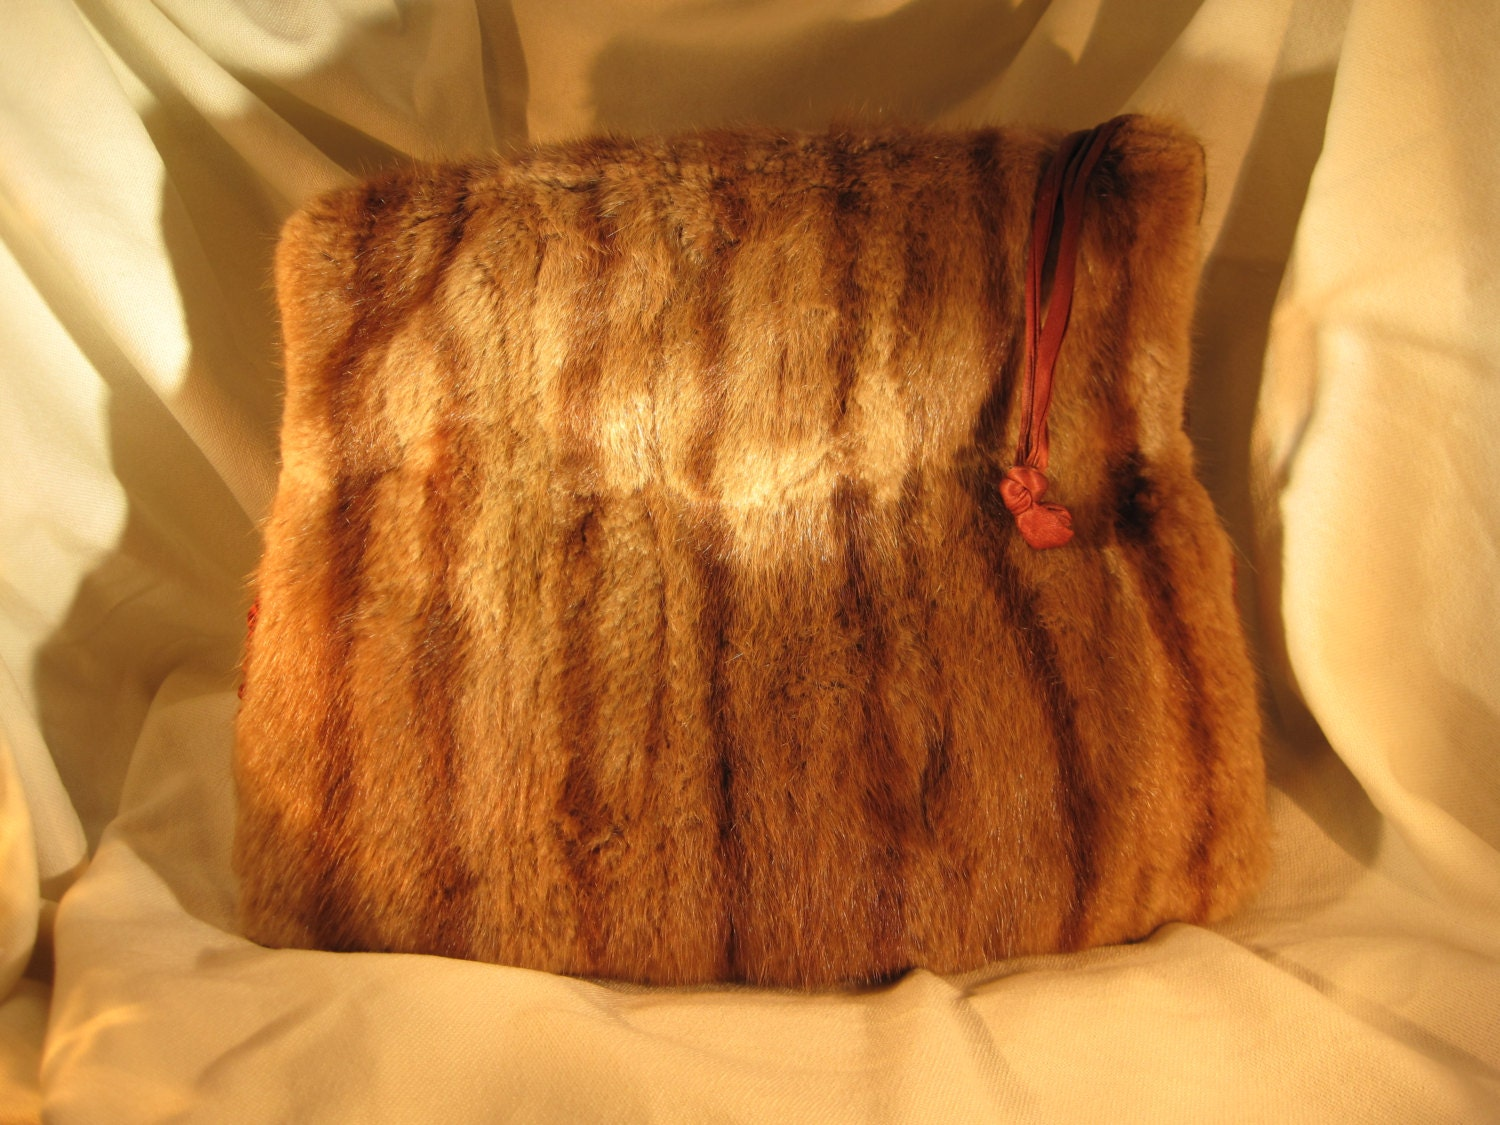 Gorgeous Vintage Brown Real Fur Muff and Purse, Mink(?) with Satin Trim 1930's/40's - LaughingTreeVintage